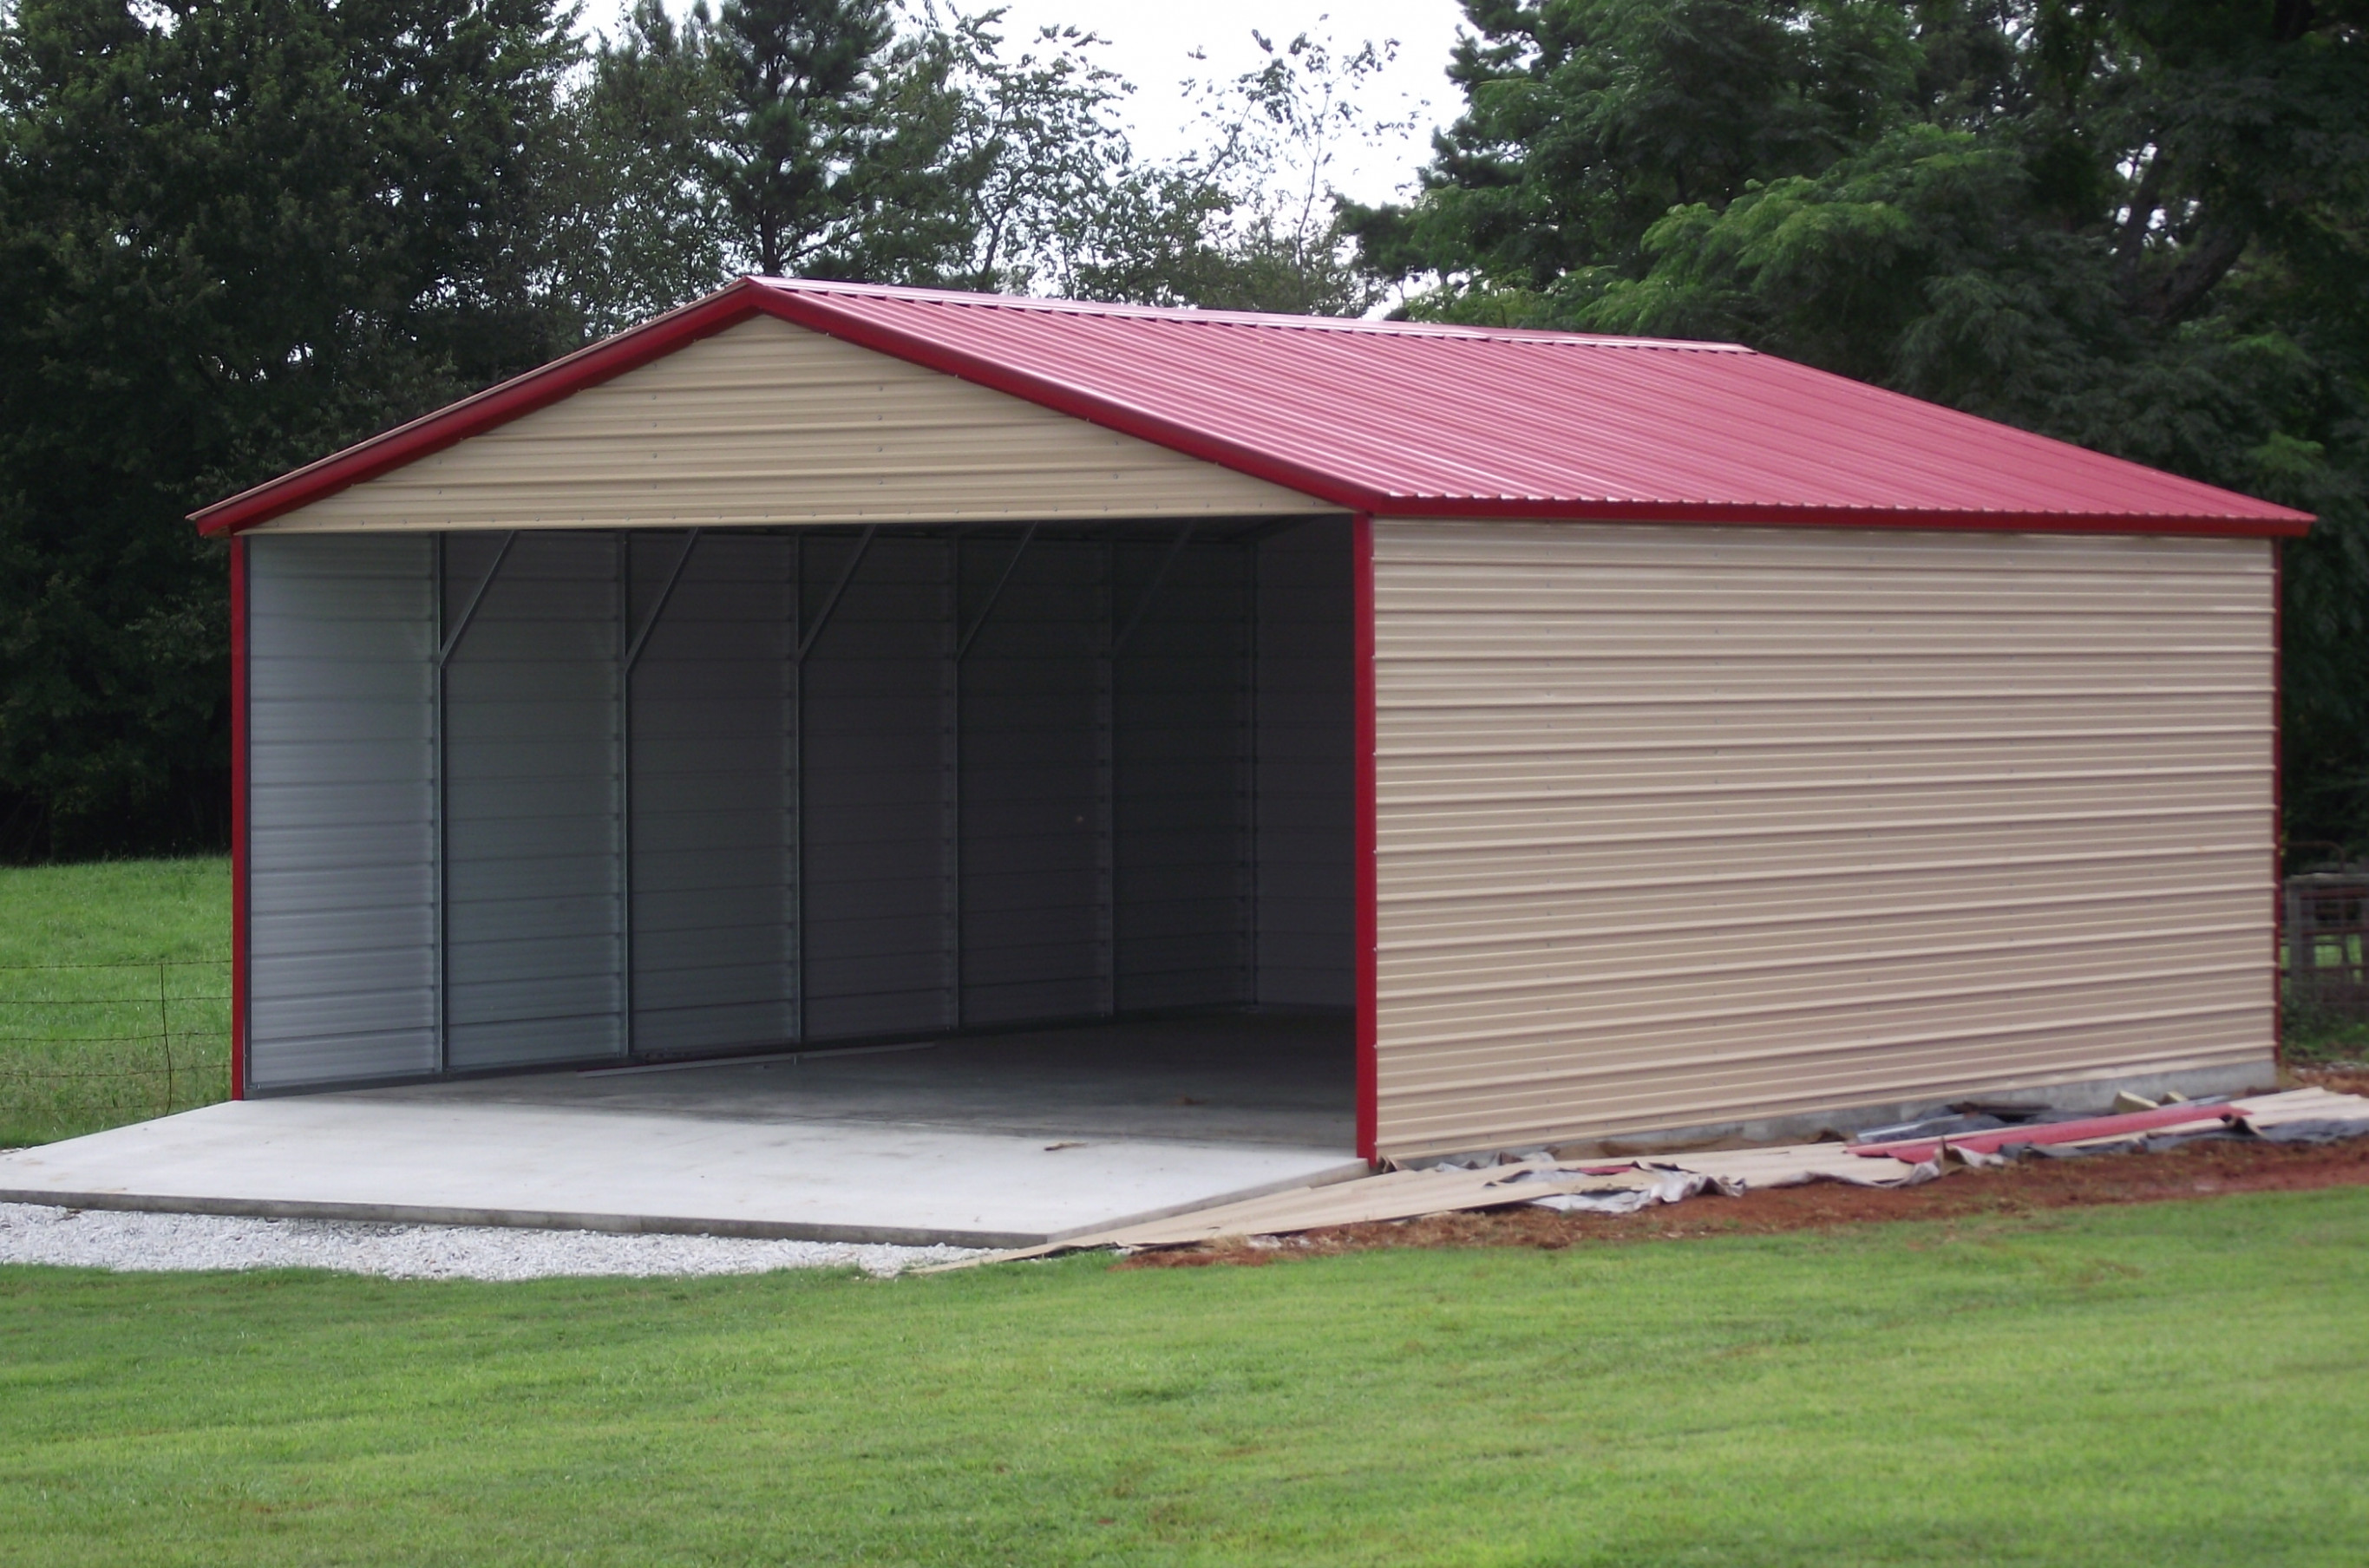 Carports Arizona AZ | Metal Carports Arizona AZ Carport Garages Metal